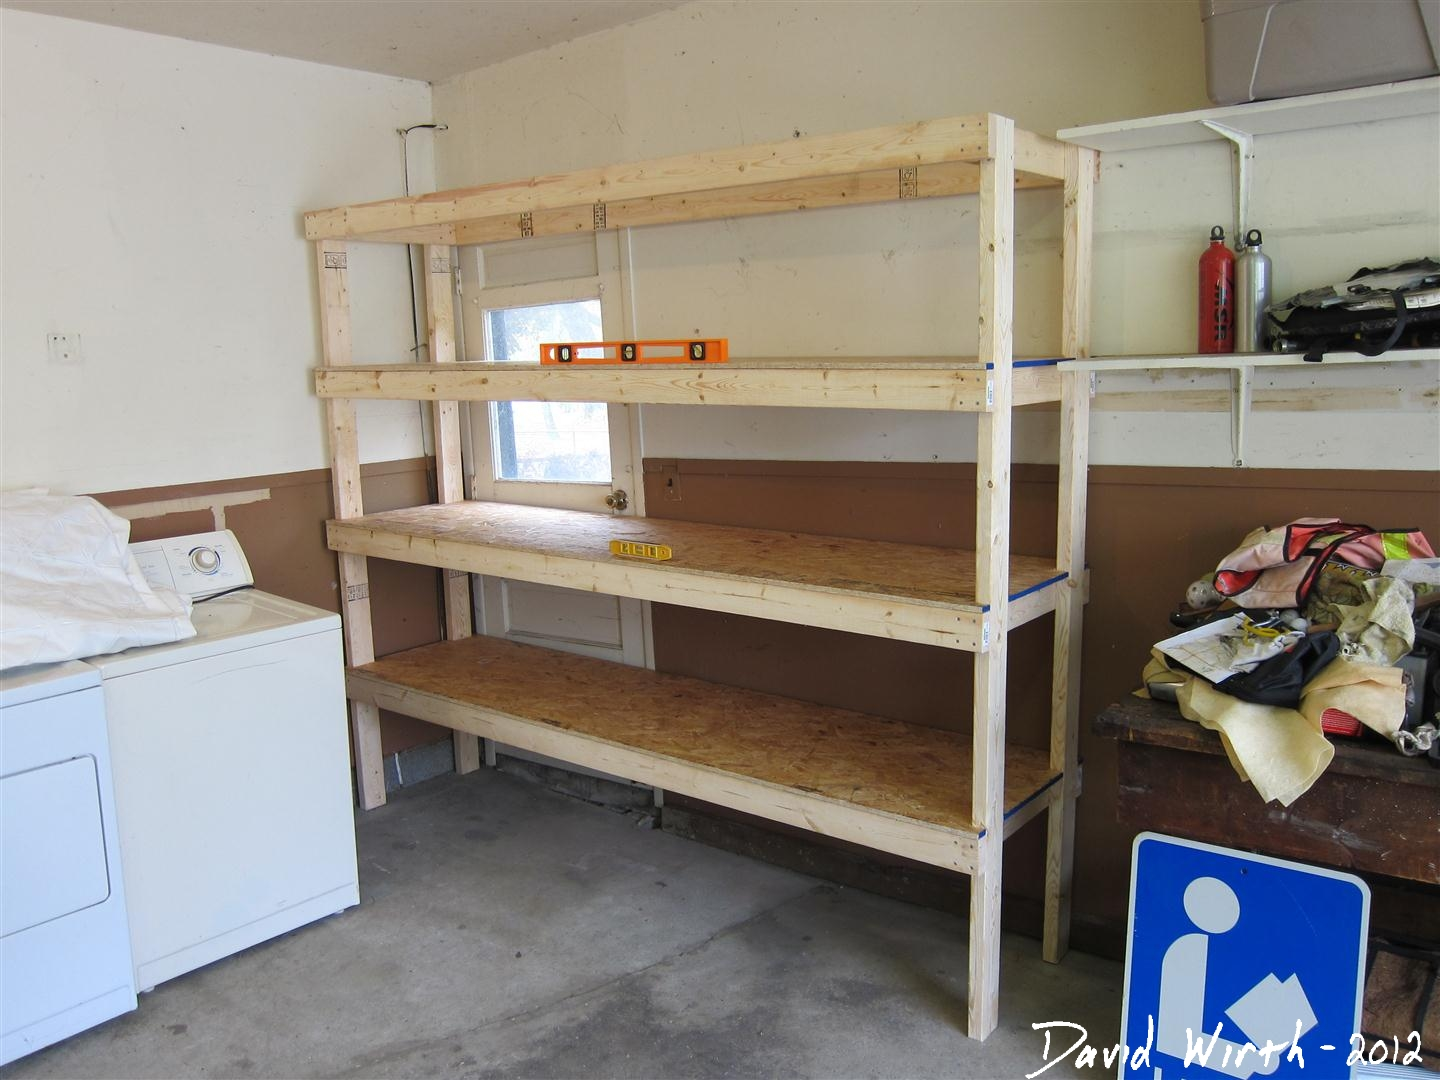 How to Build a Shelf for the Garage